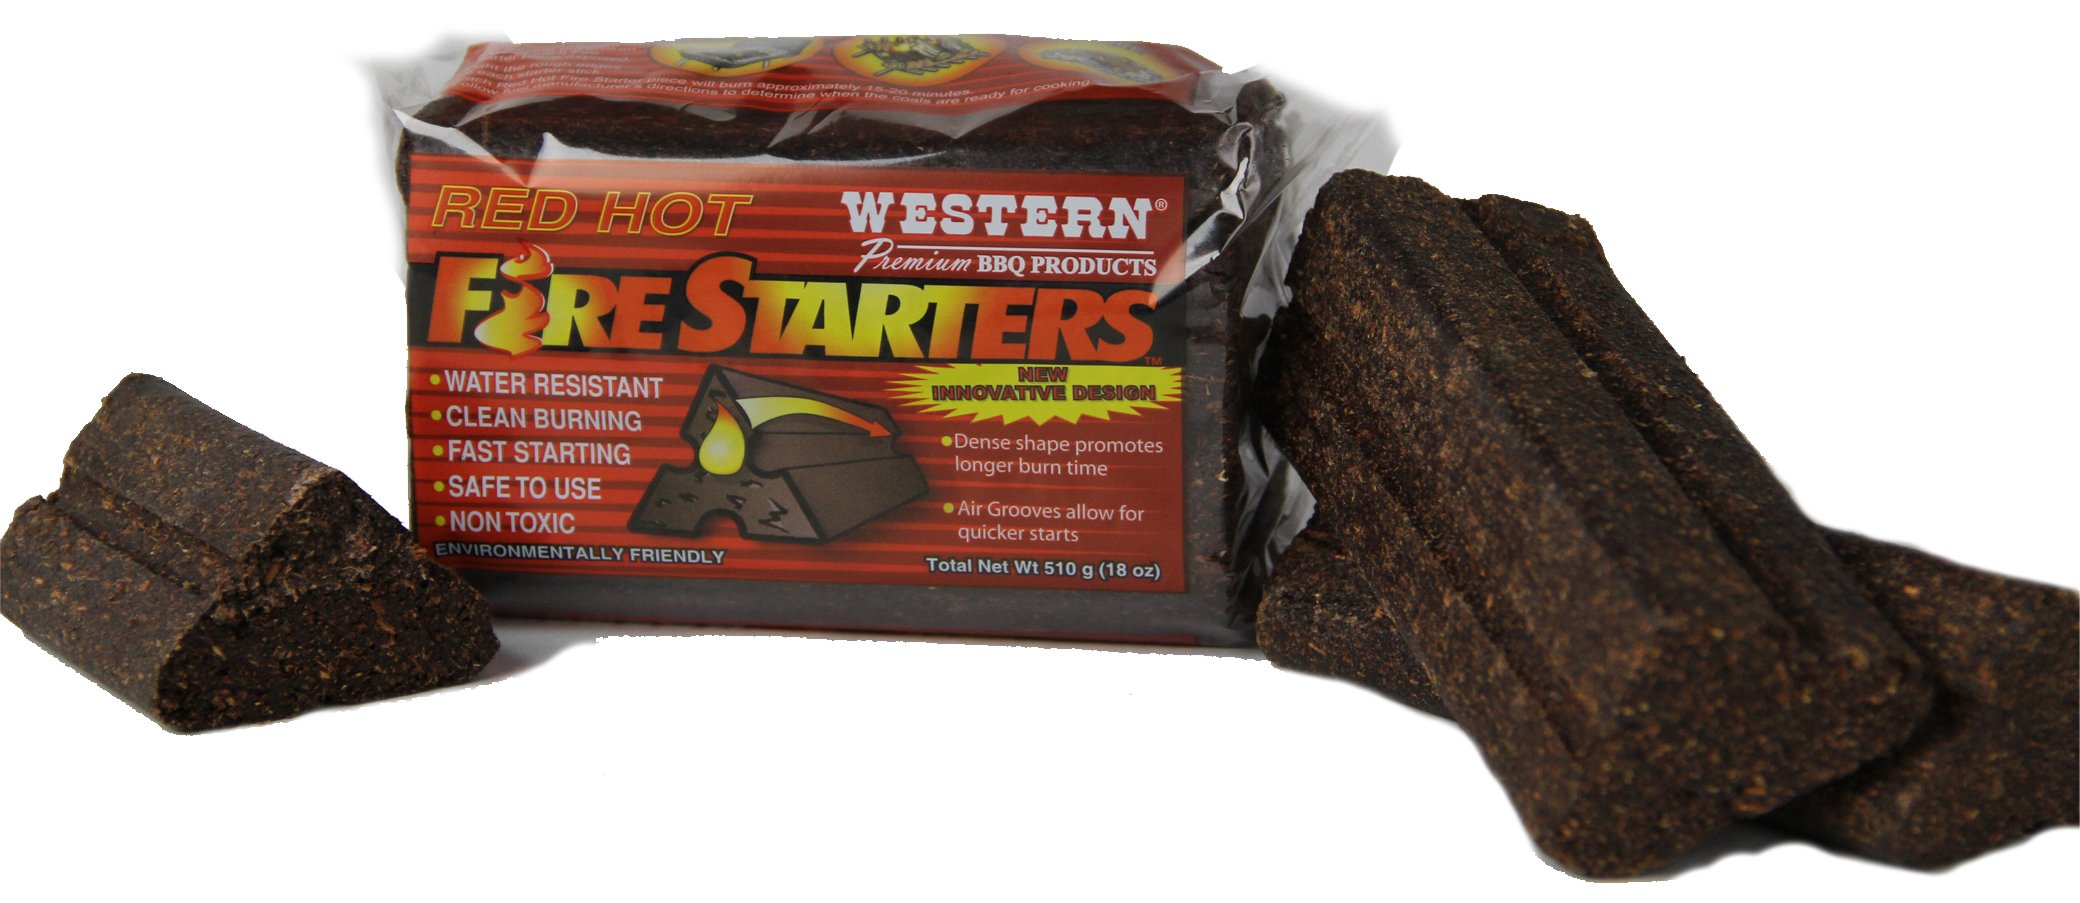 WESTERN 00418 4-Pack Red Hot Fire Starters